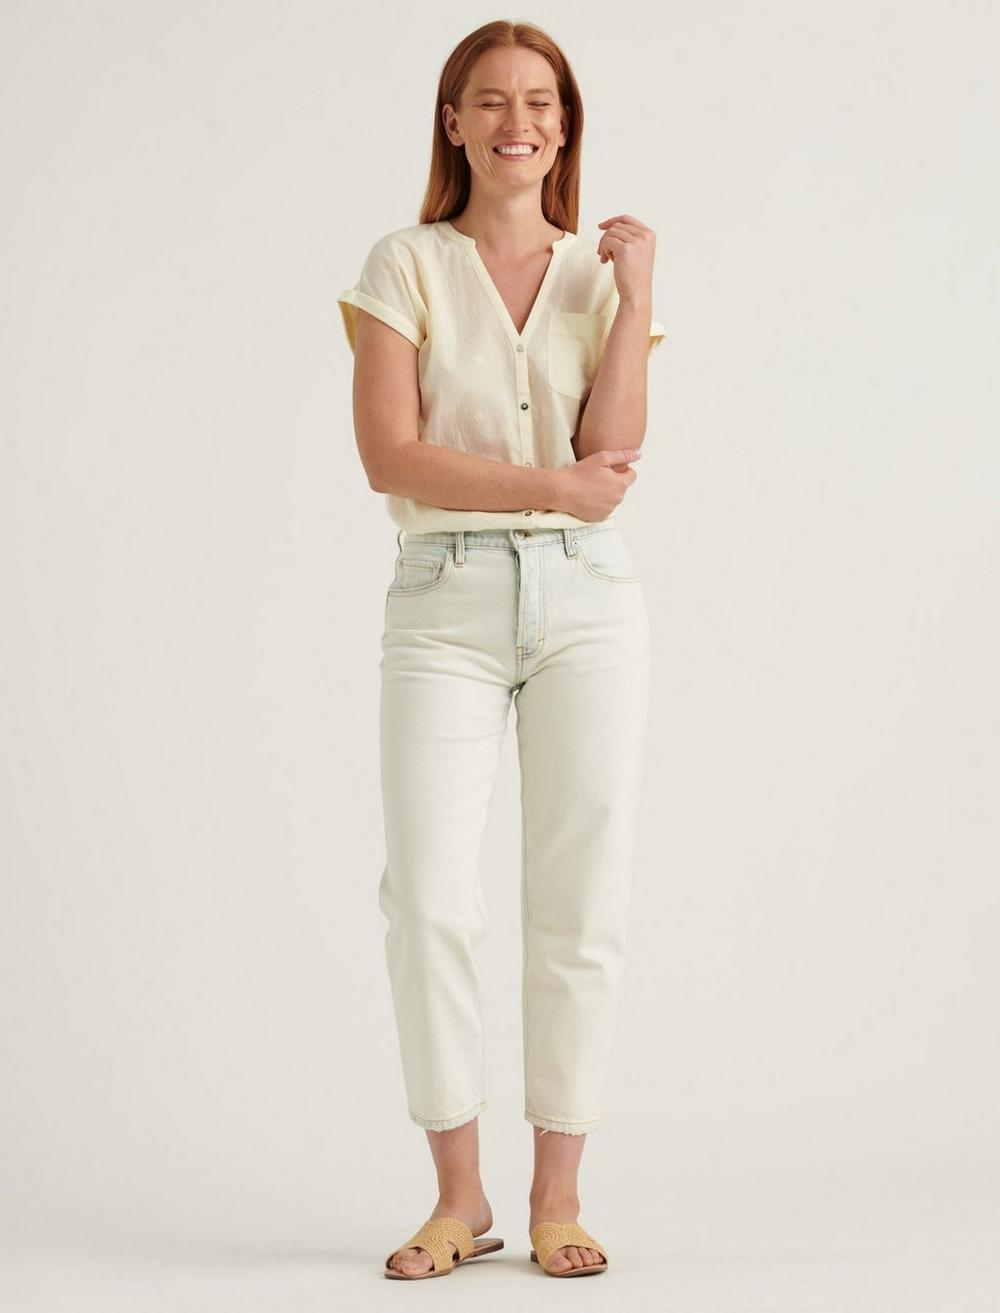 SHORT SLEEVE WOVEN MIX BUTTON DOWN TOP, image 2